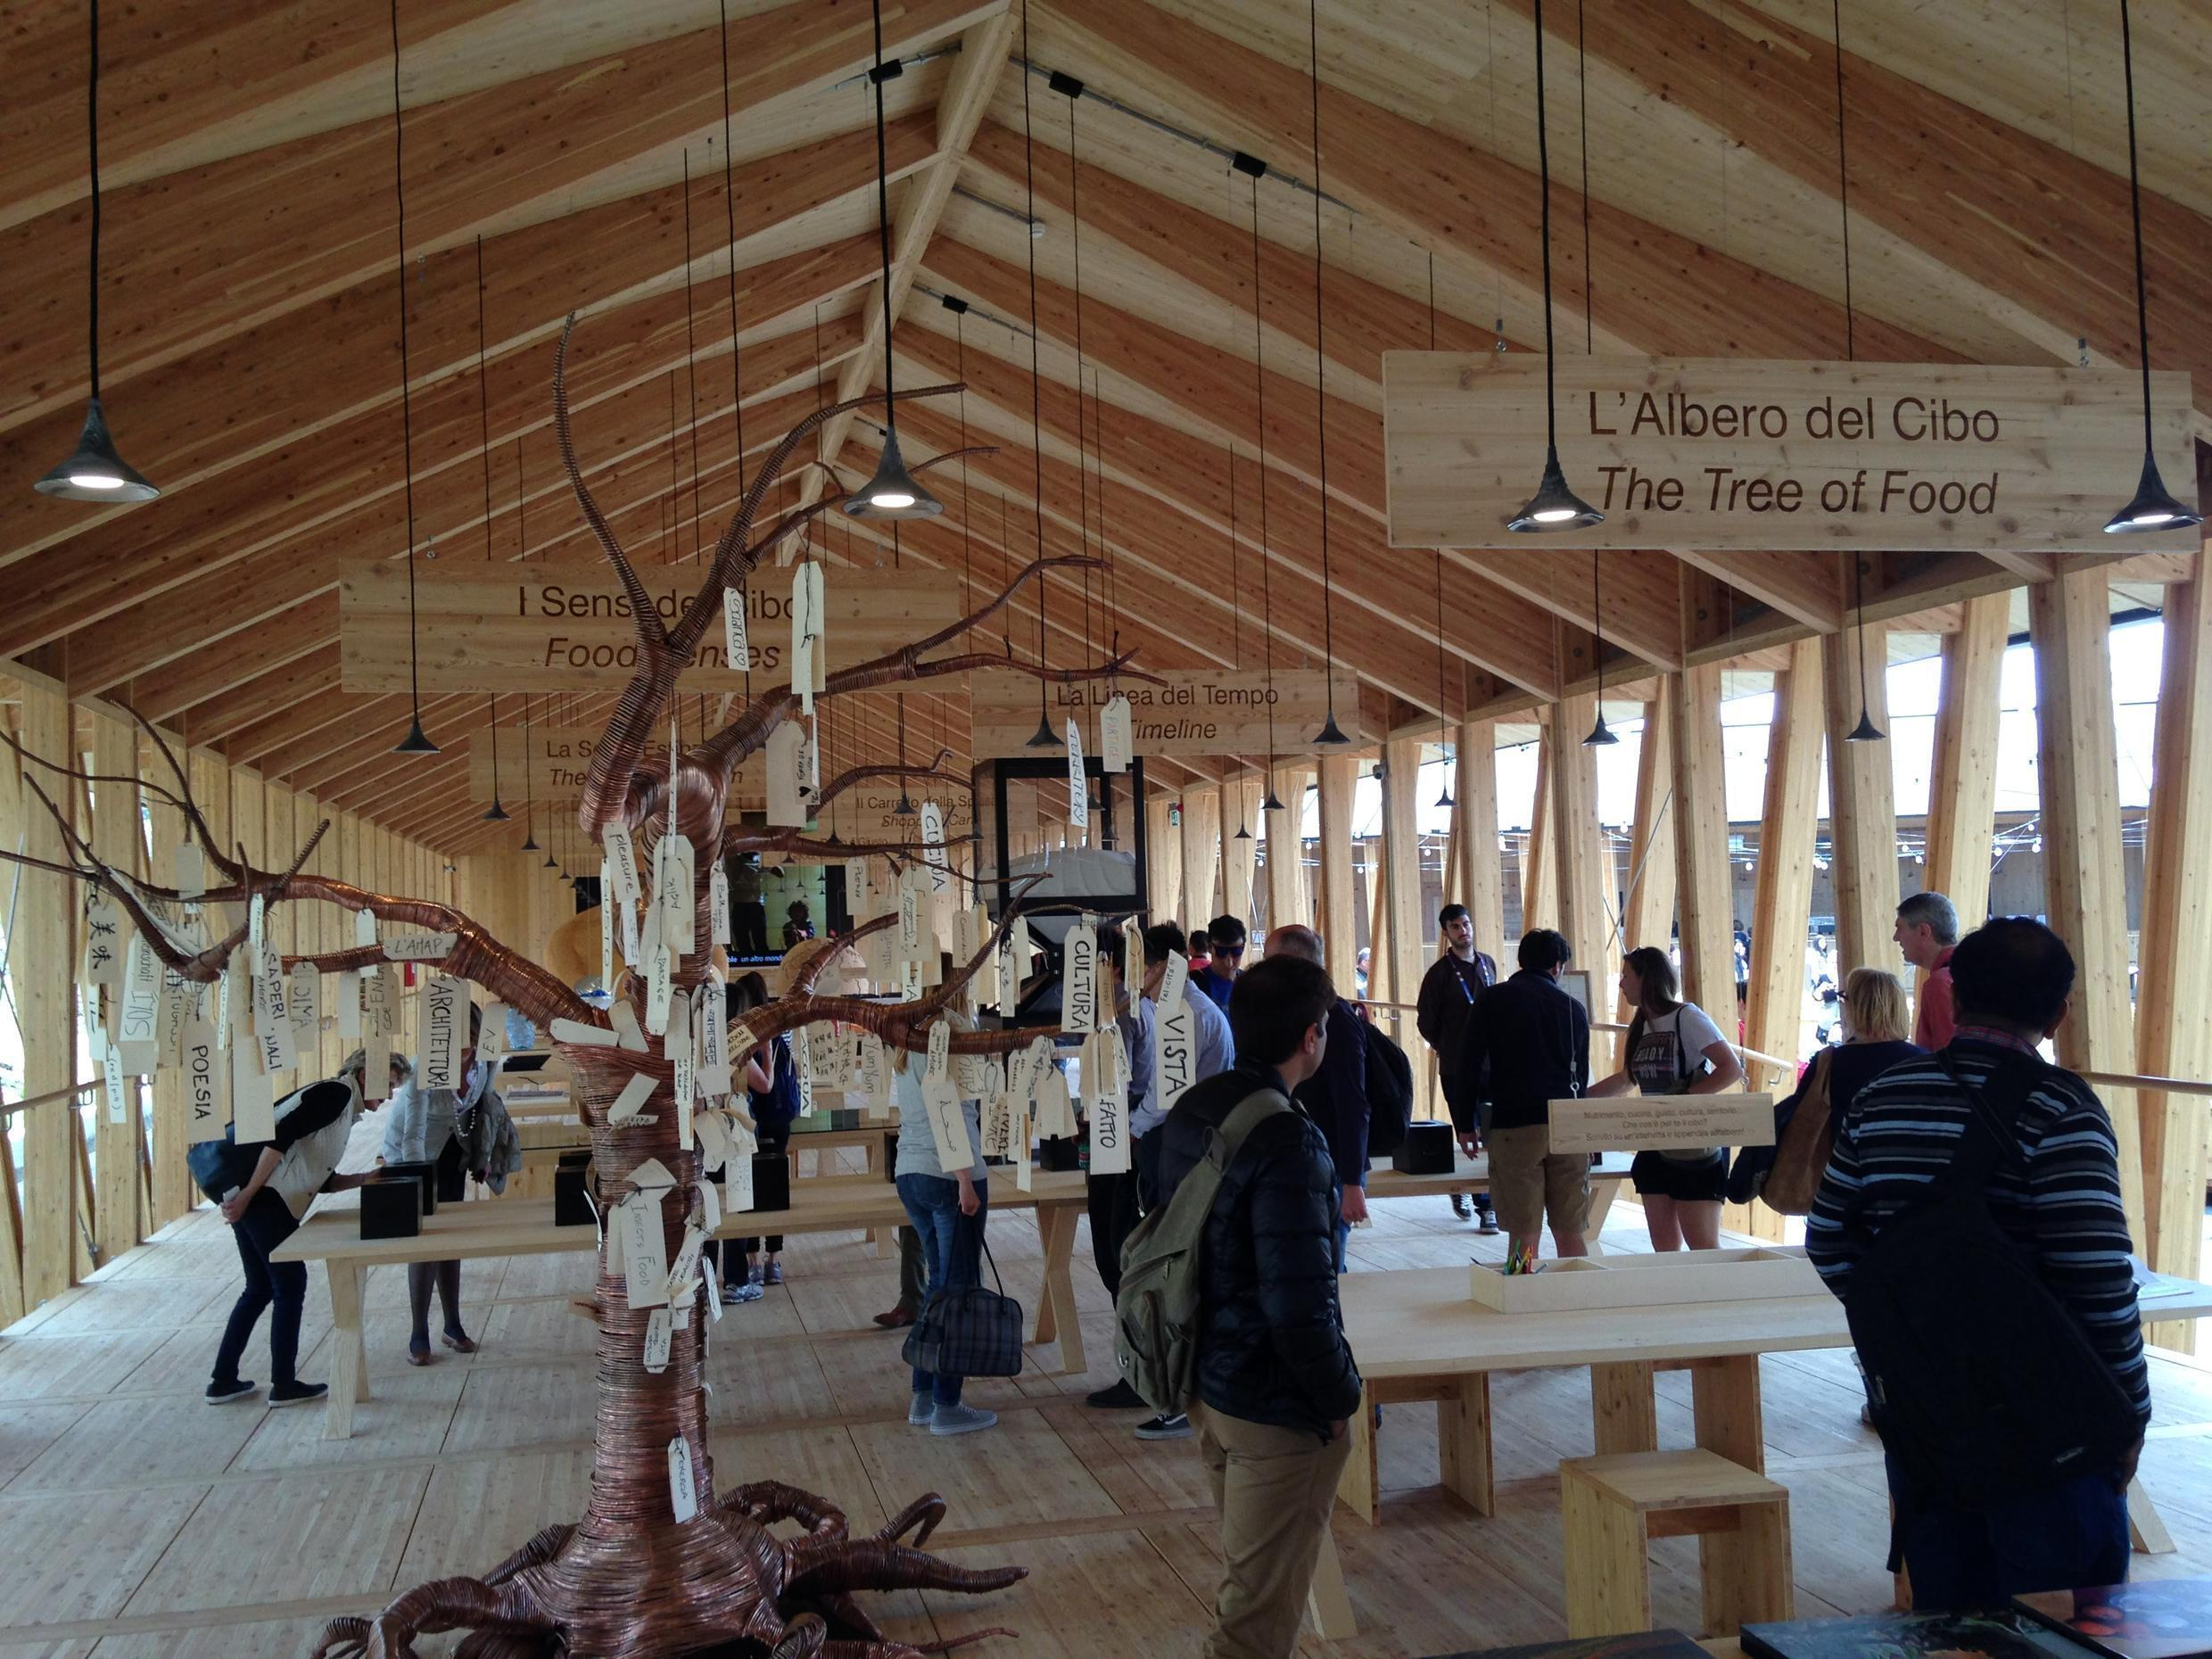 Visitantes passeiam pelo estande do movimento Slow Food na Expo 2015